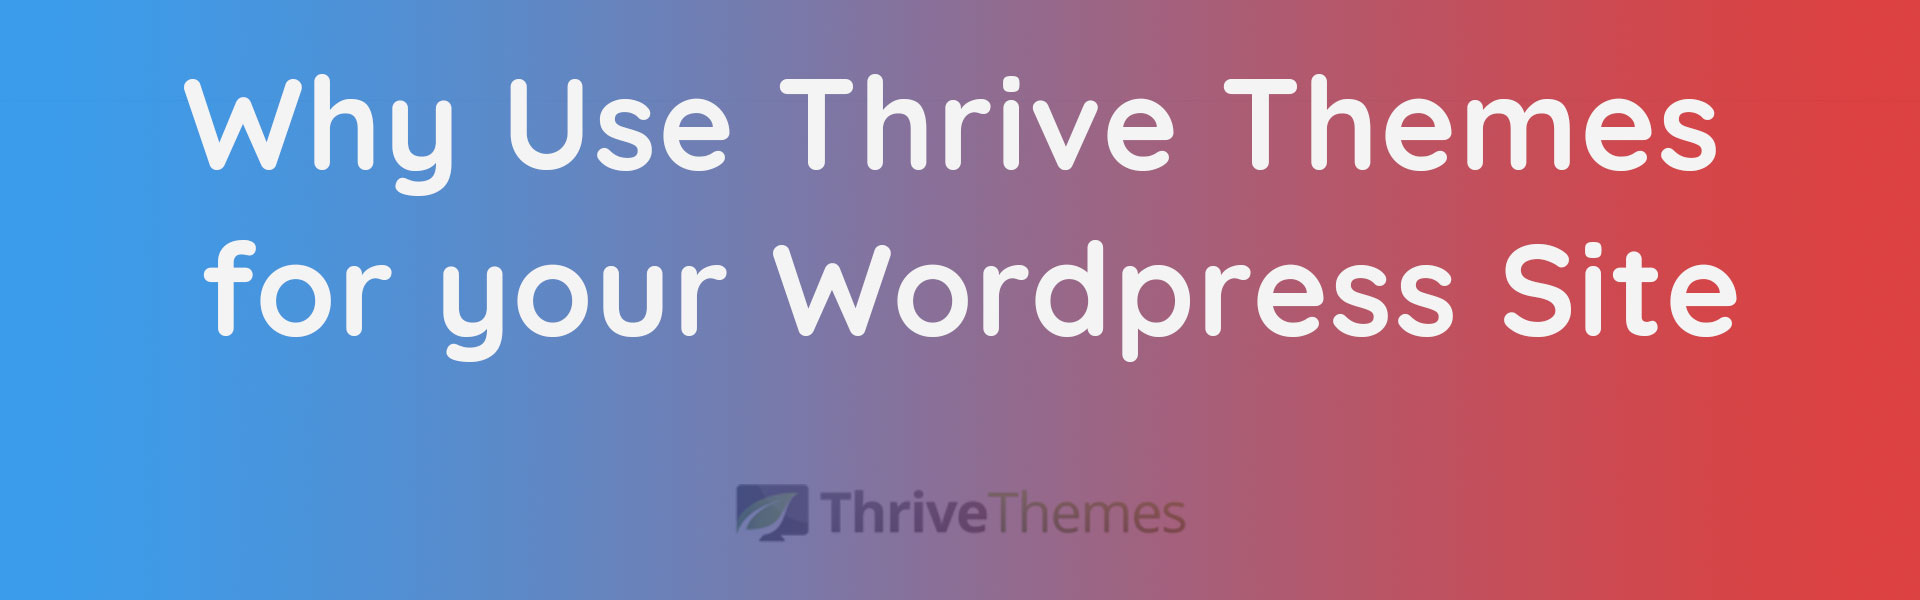 WordPress Themes Thrive Themes Box Images